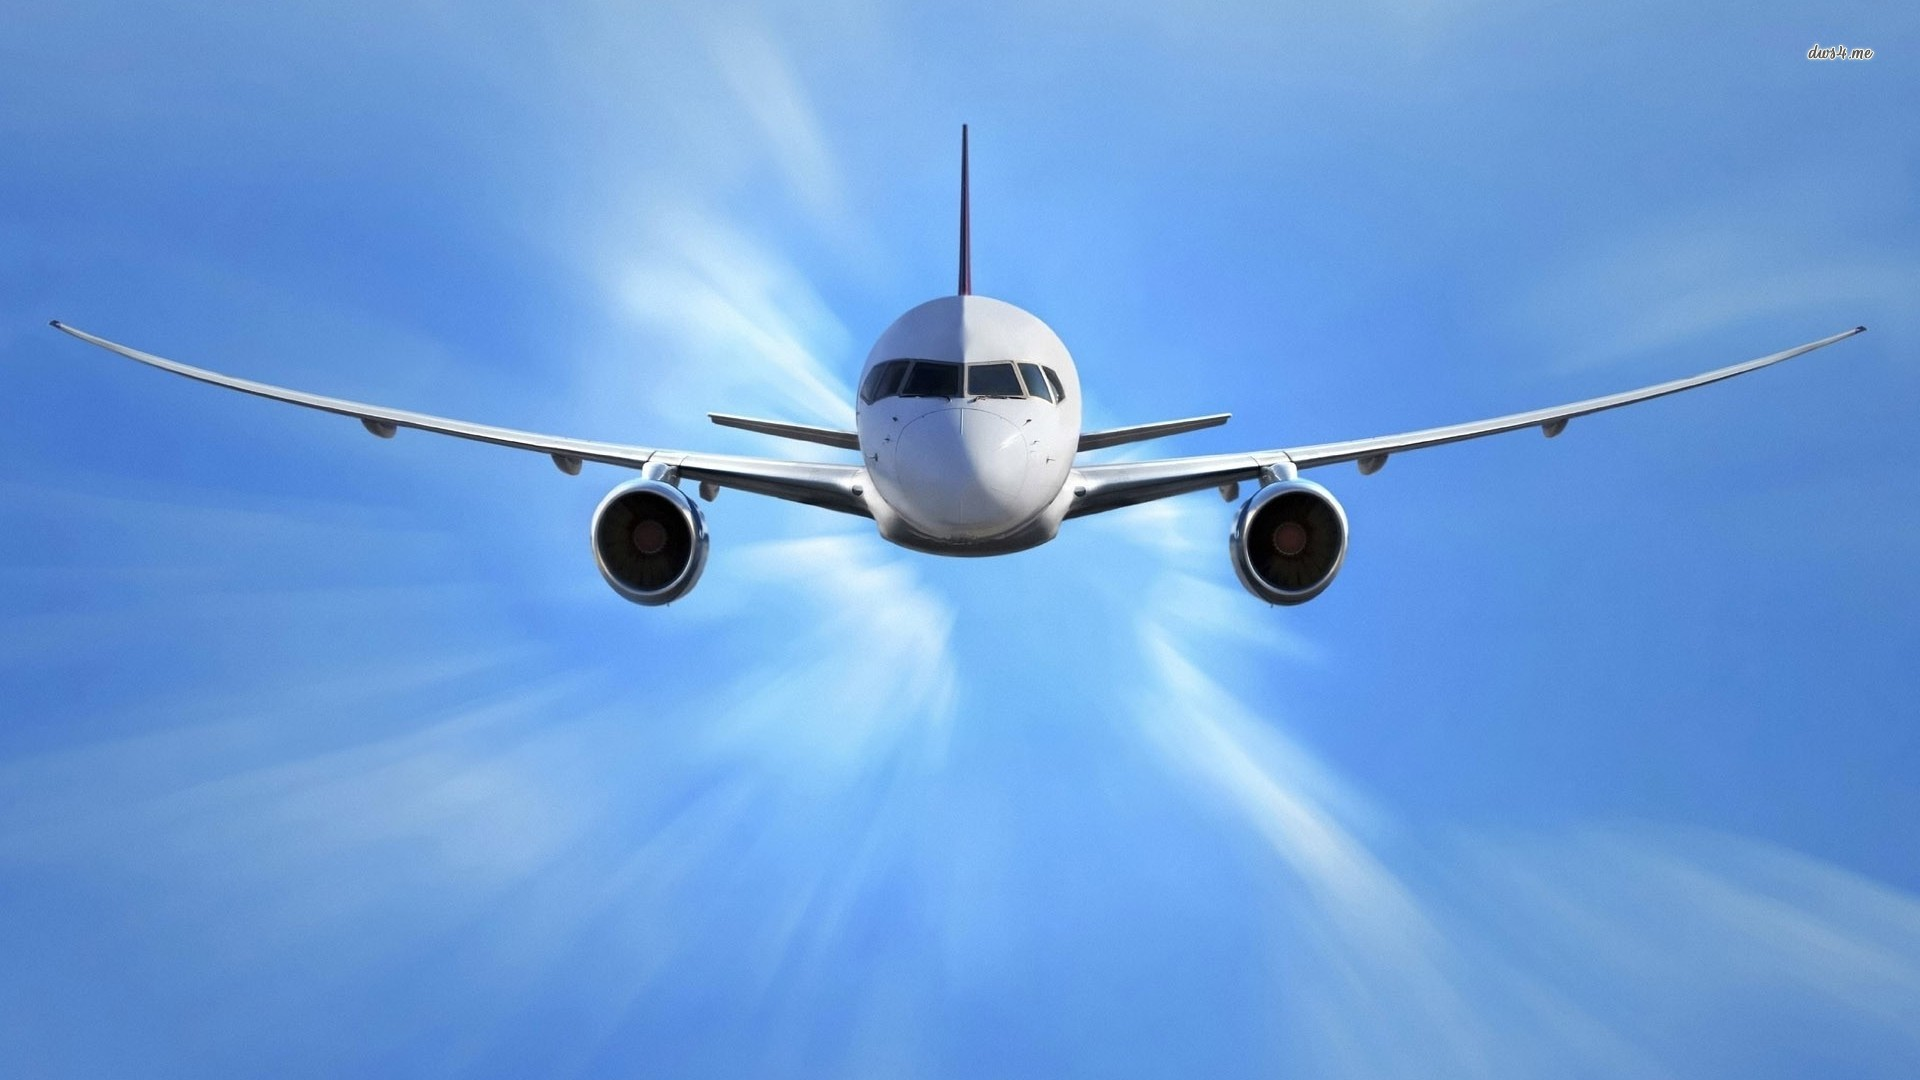 3d All Wallpaper Free Download 55 Hd Airplane Wallpapers Backgrounds For Free Download